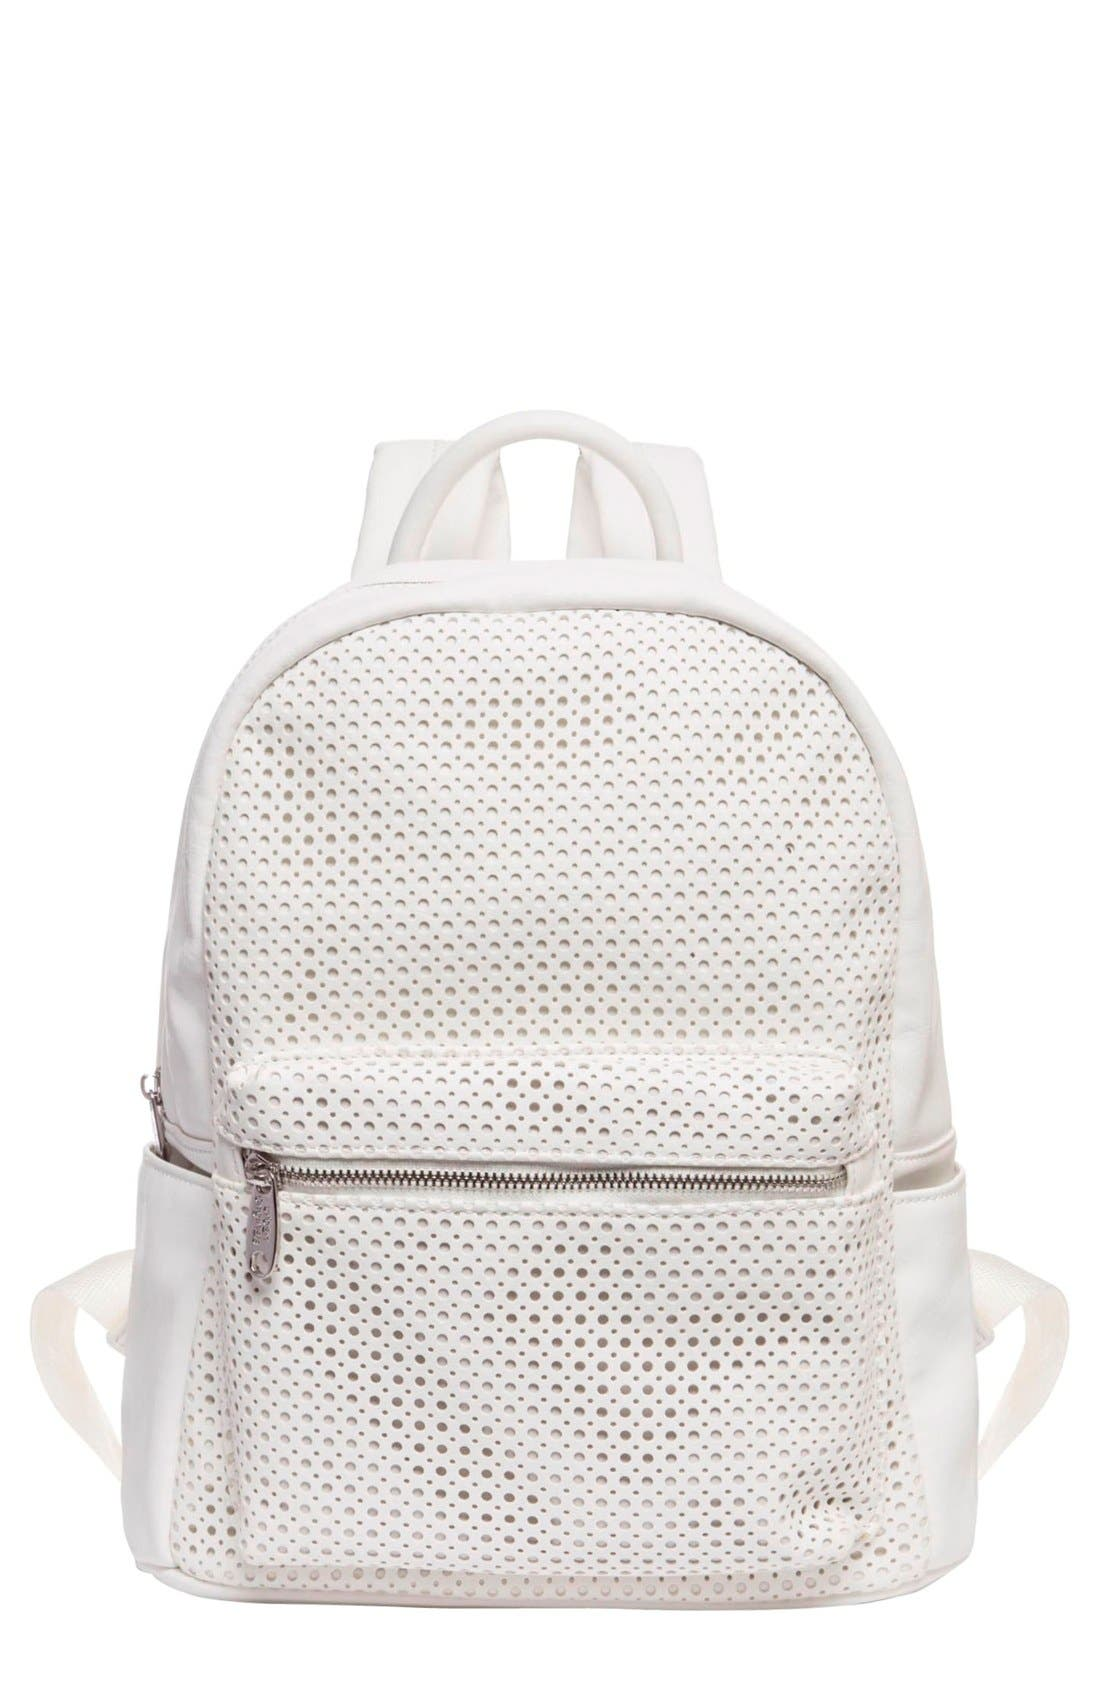 Lola Perforated Vegan Leather Backpack,                         Main,                         color, 100